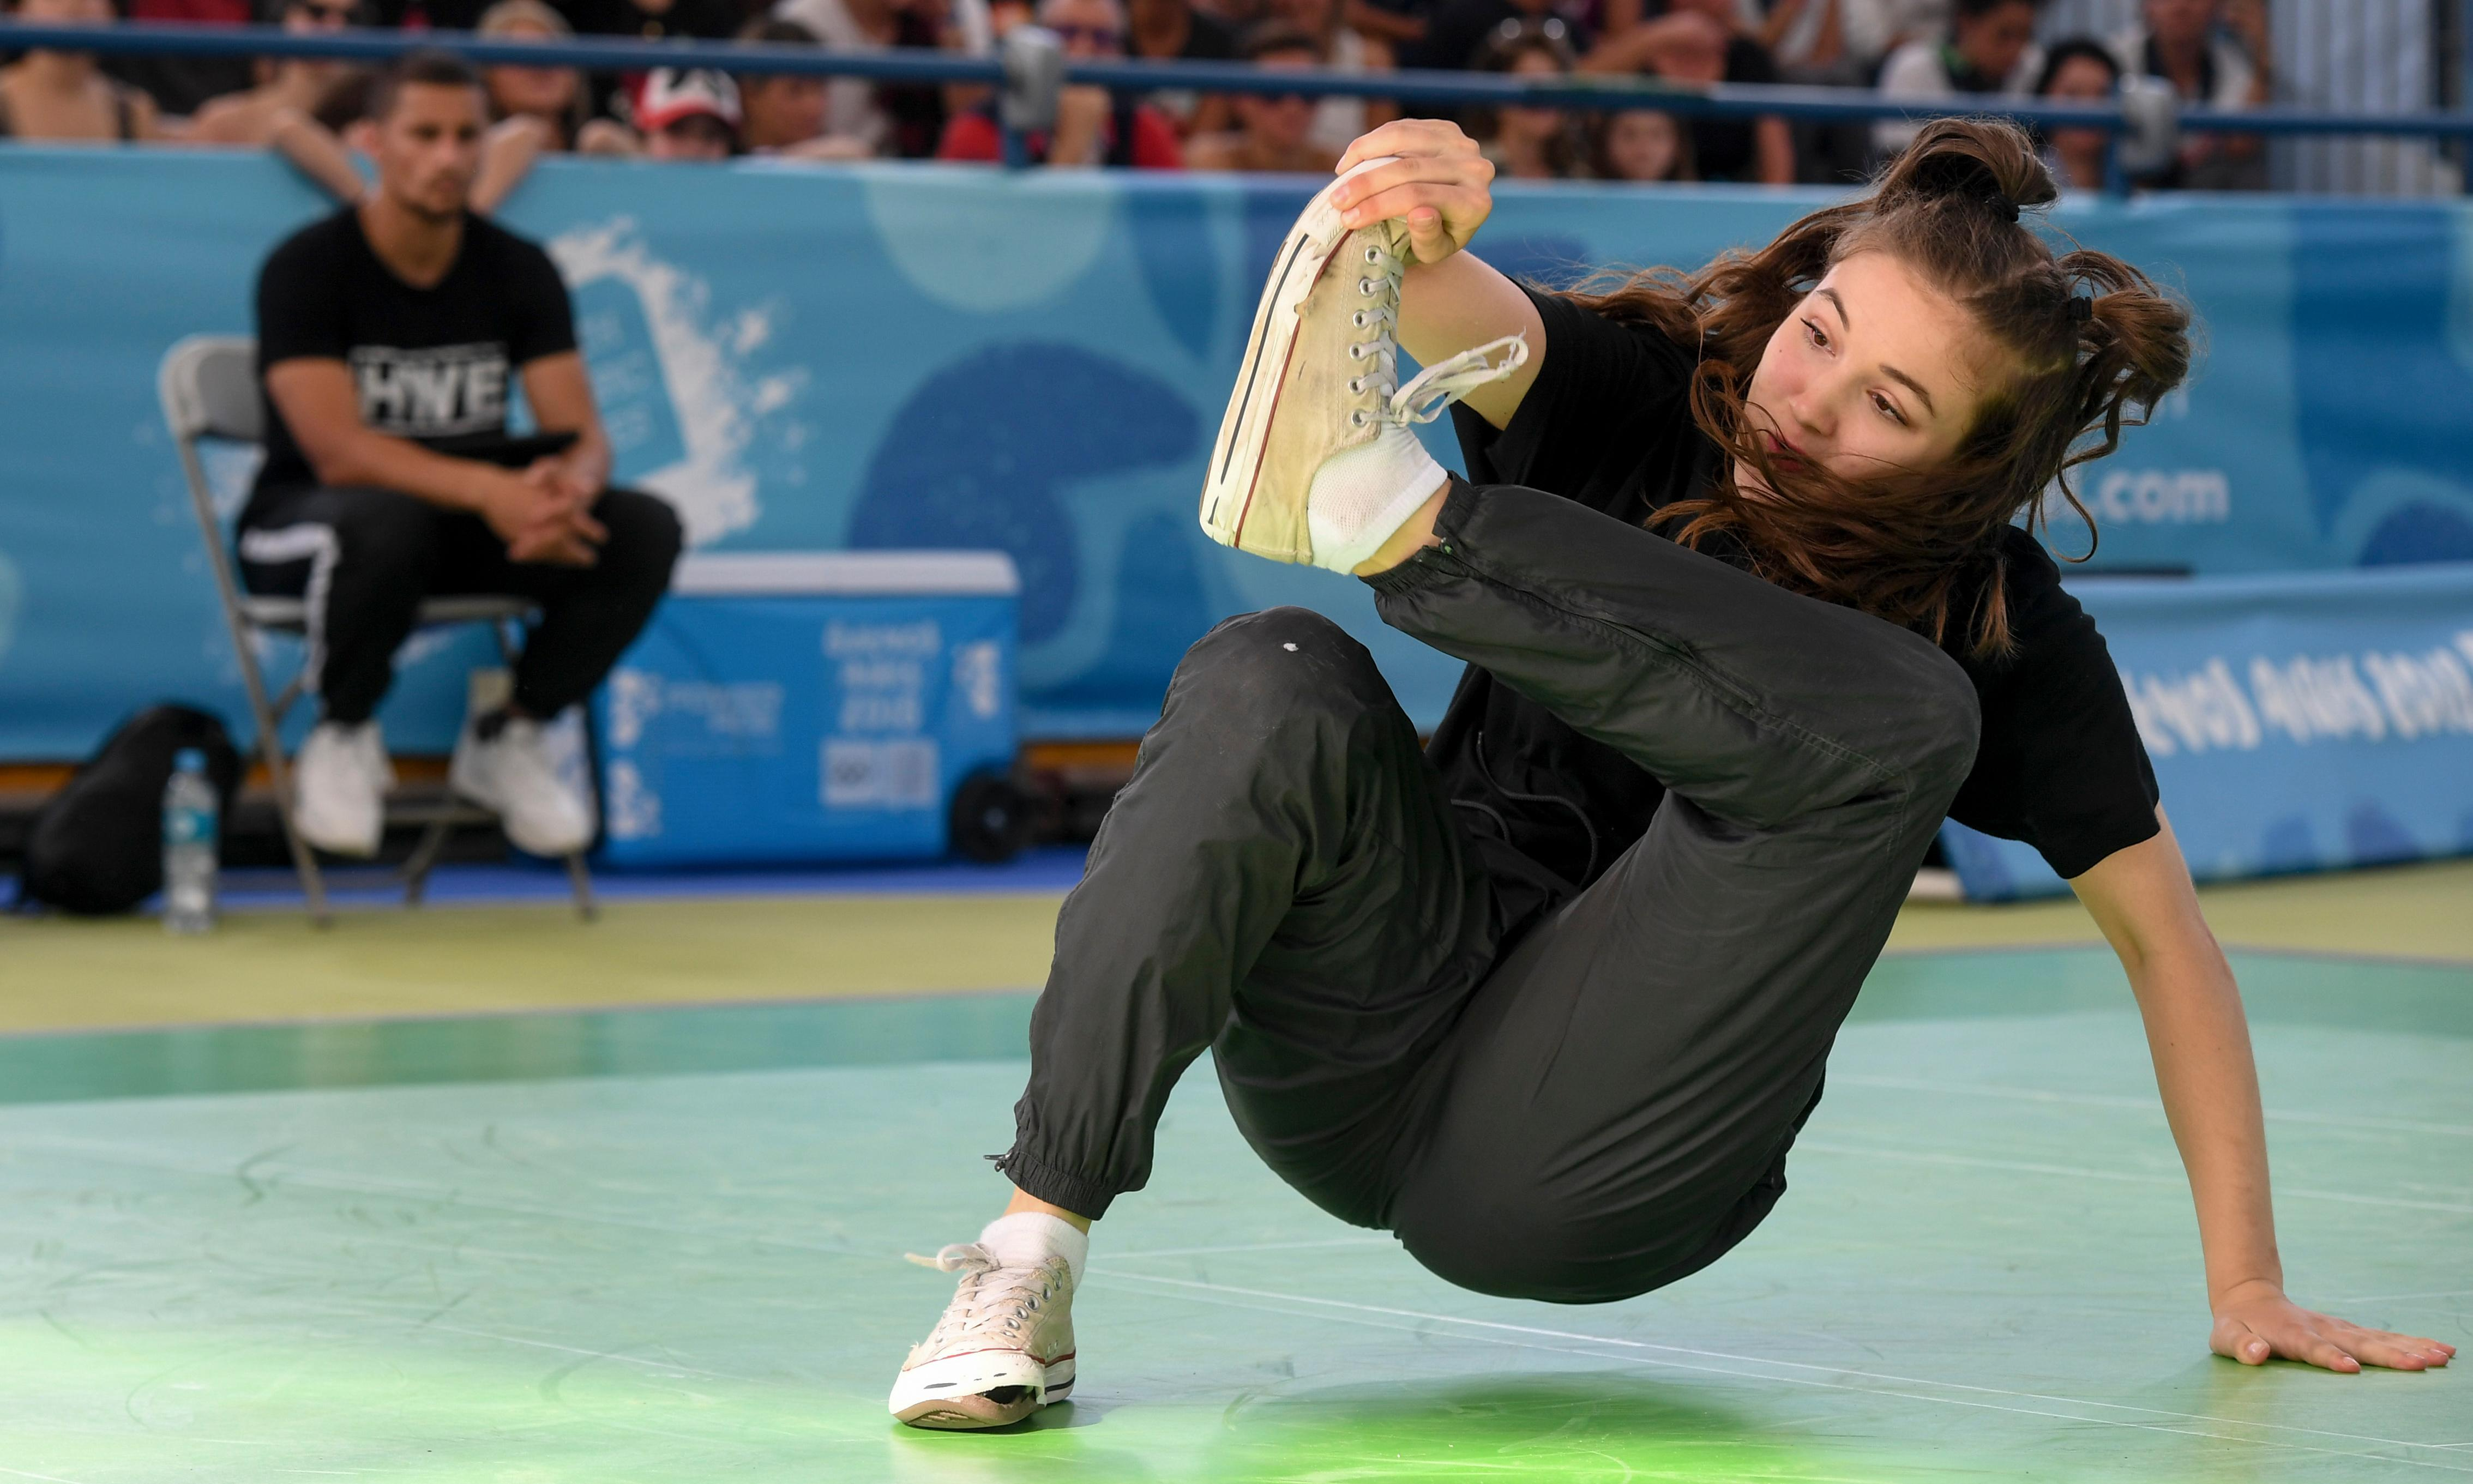 Breaking news: Street dance moves closer to Olympic debut at Paris 2024